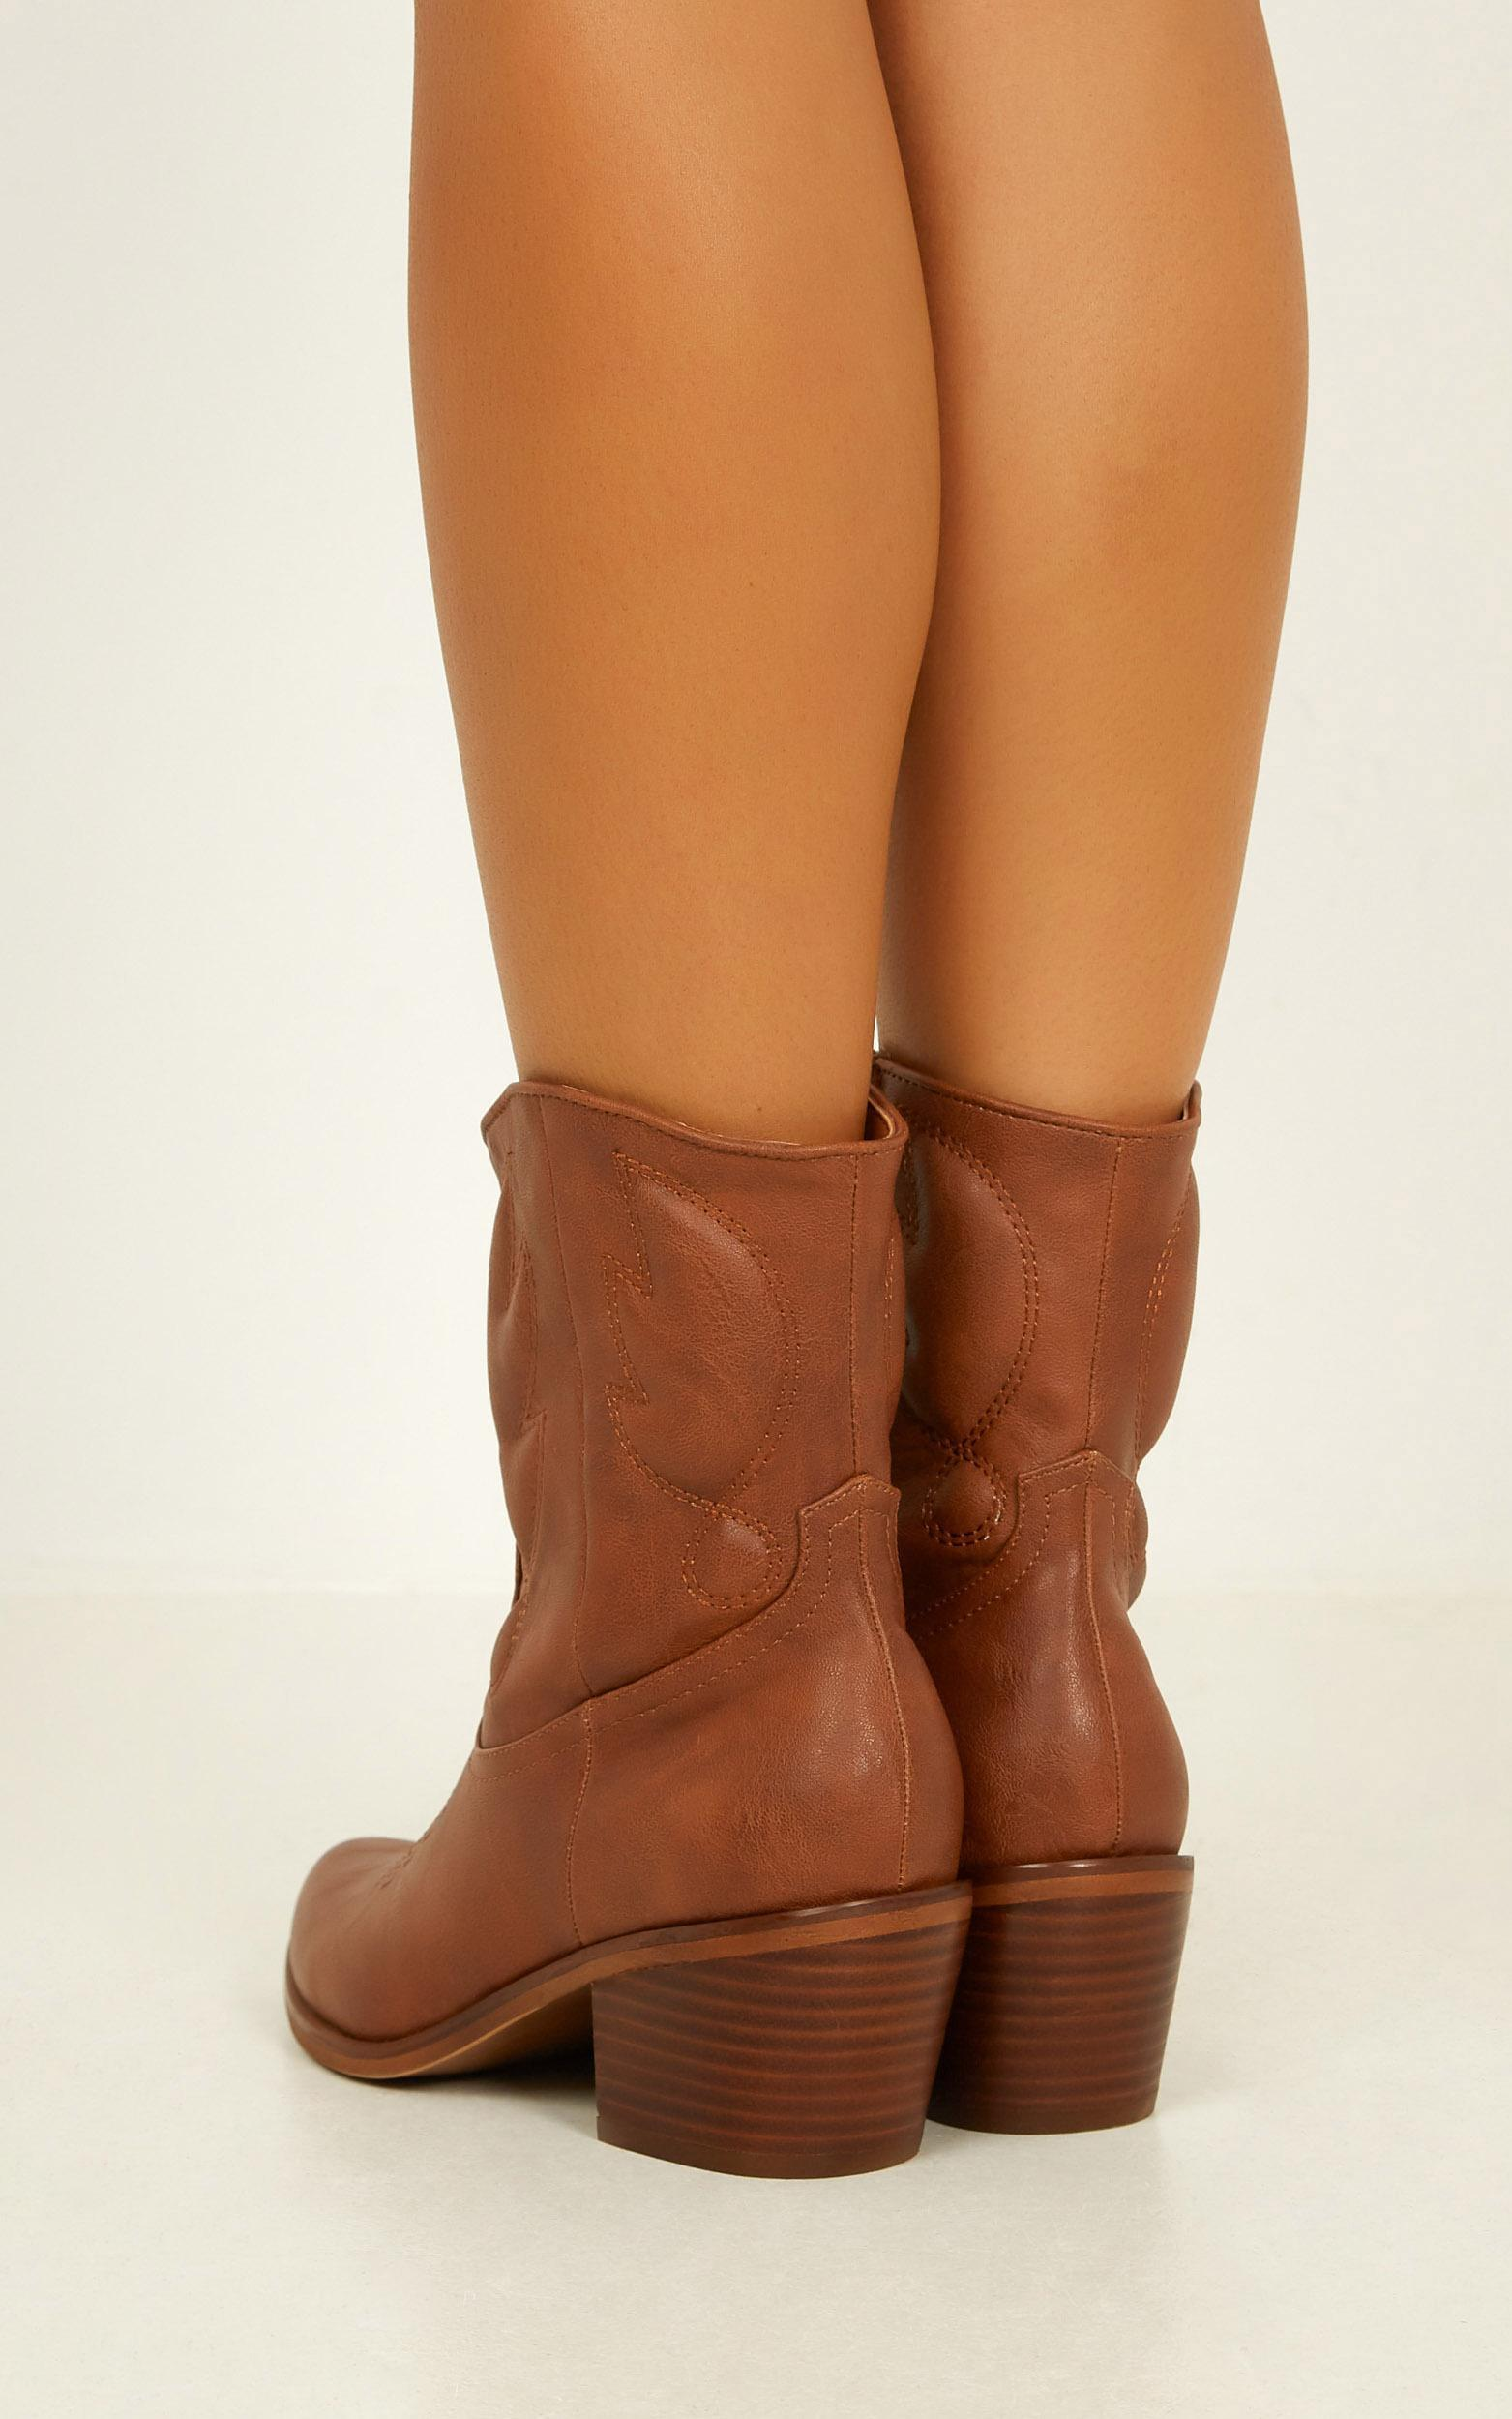 Therapy - Gibson Boots in tan - 10, Tan, hi-res image number null